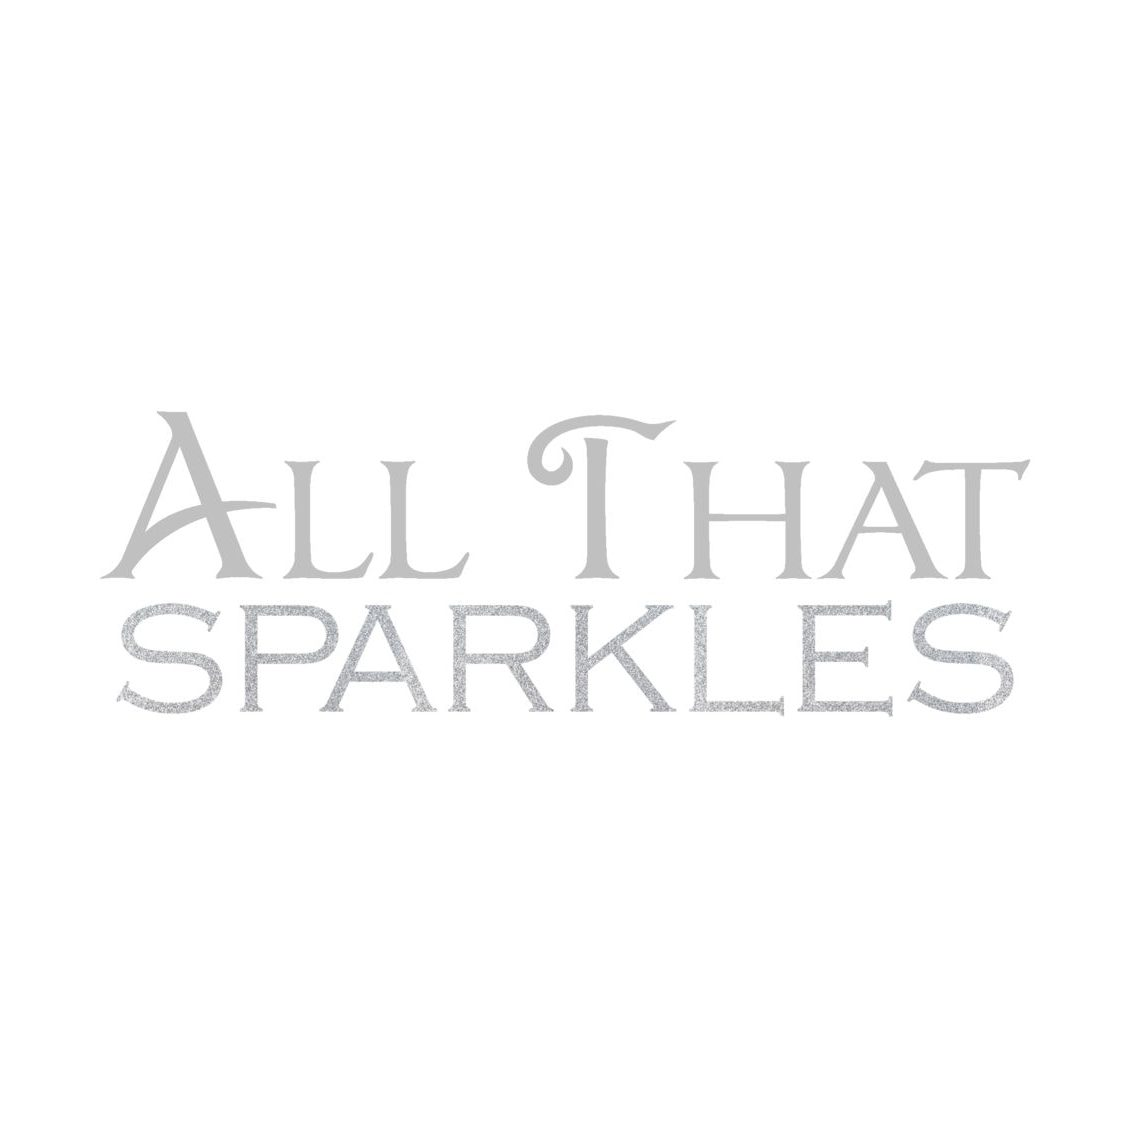 All-that-sparkles-logo-JPEG